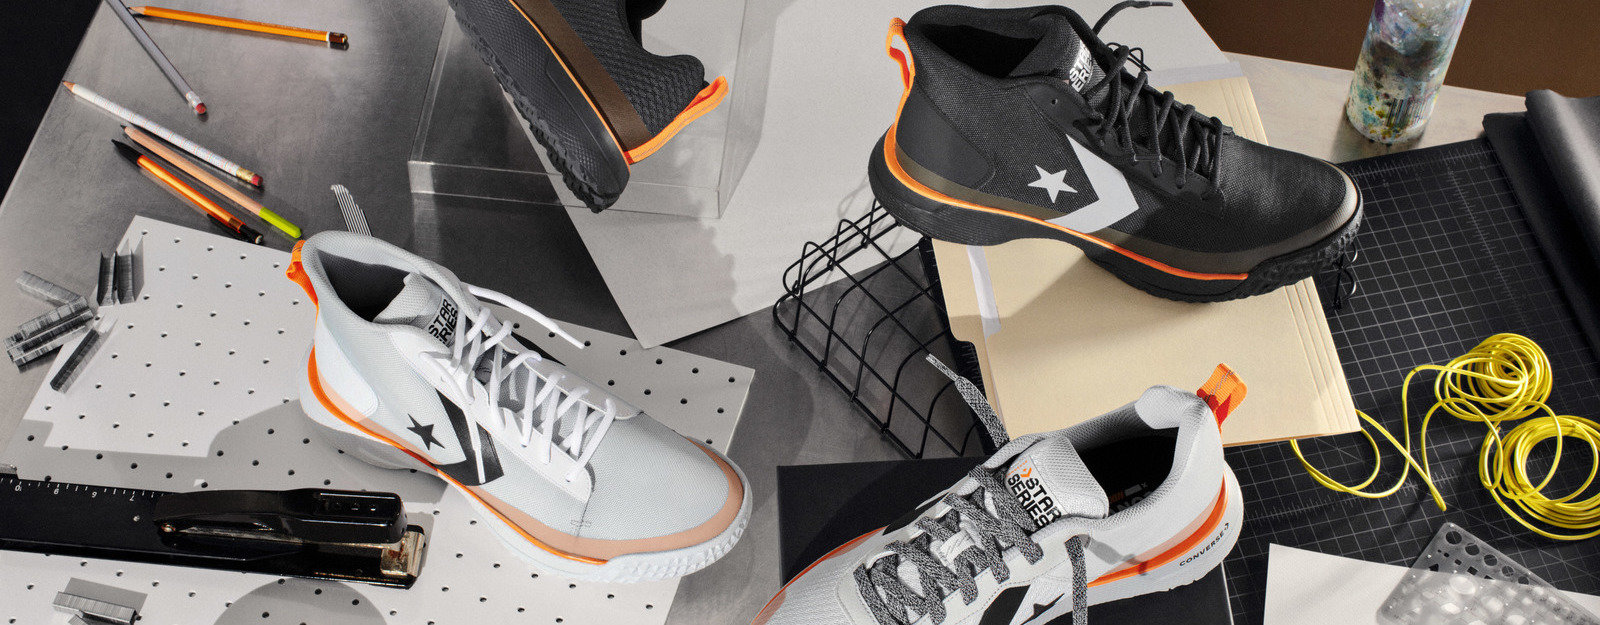 05e7ac7ef8 Converse Enlists Tinker Hatfield for New